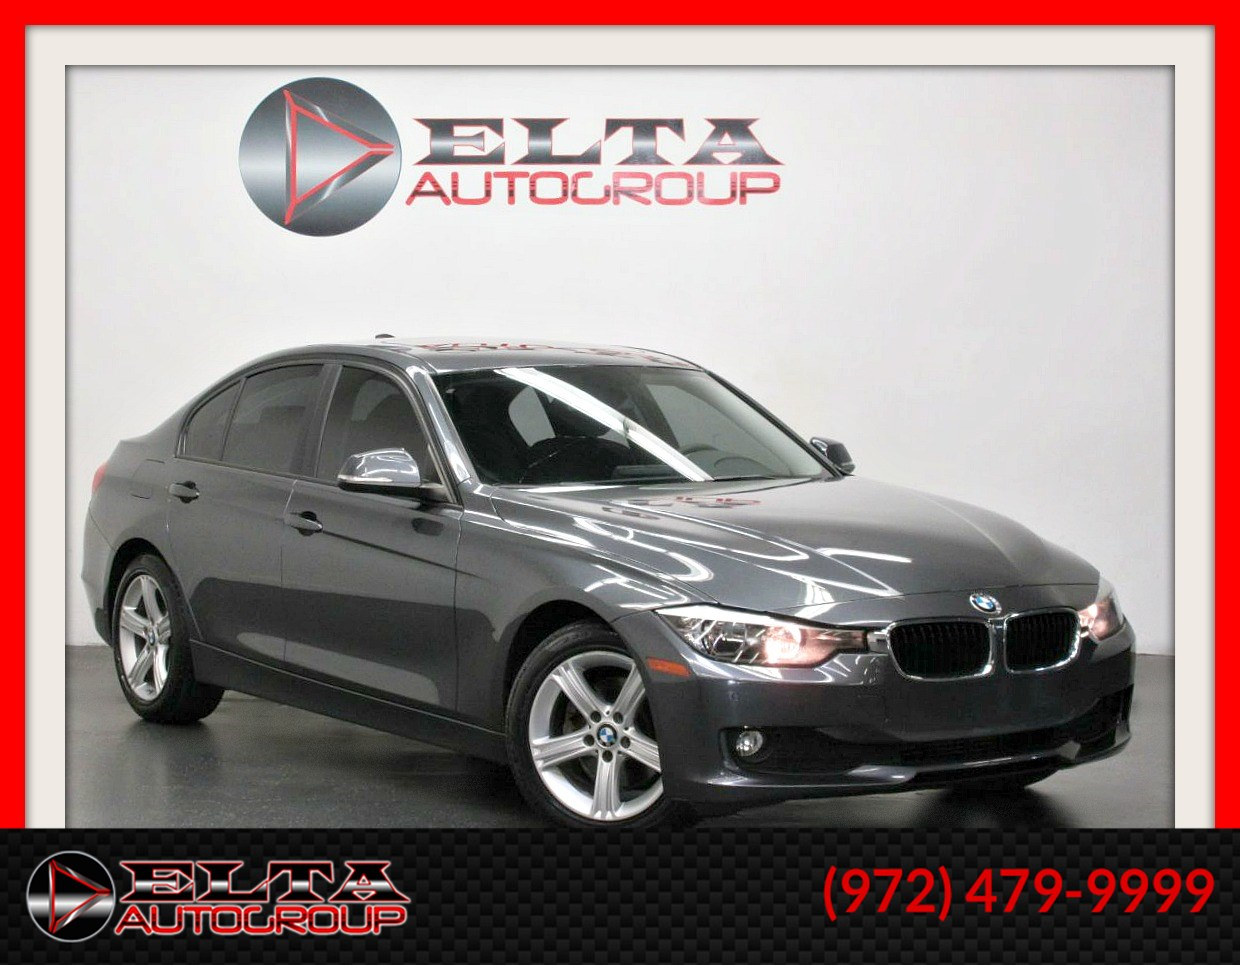 2015 BMW 3 Series 320i xDrive * CAMERA * LEATHER * ROOF * LOW MILES